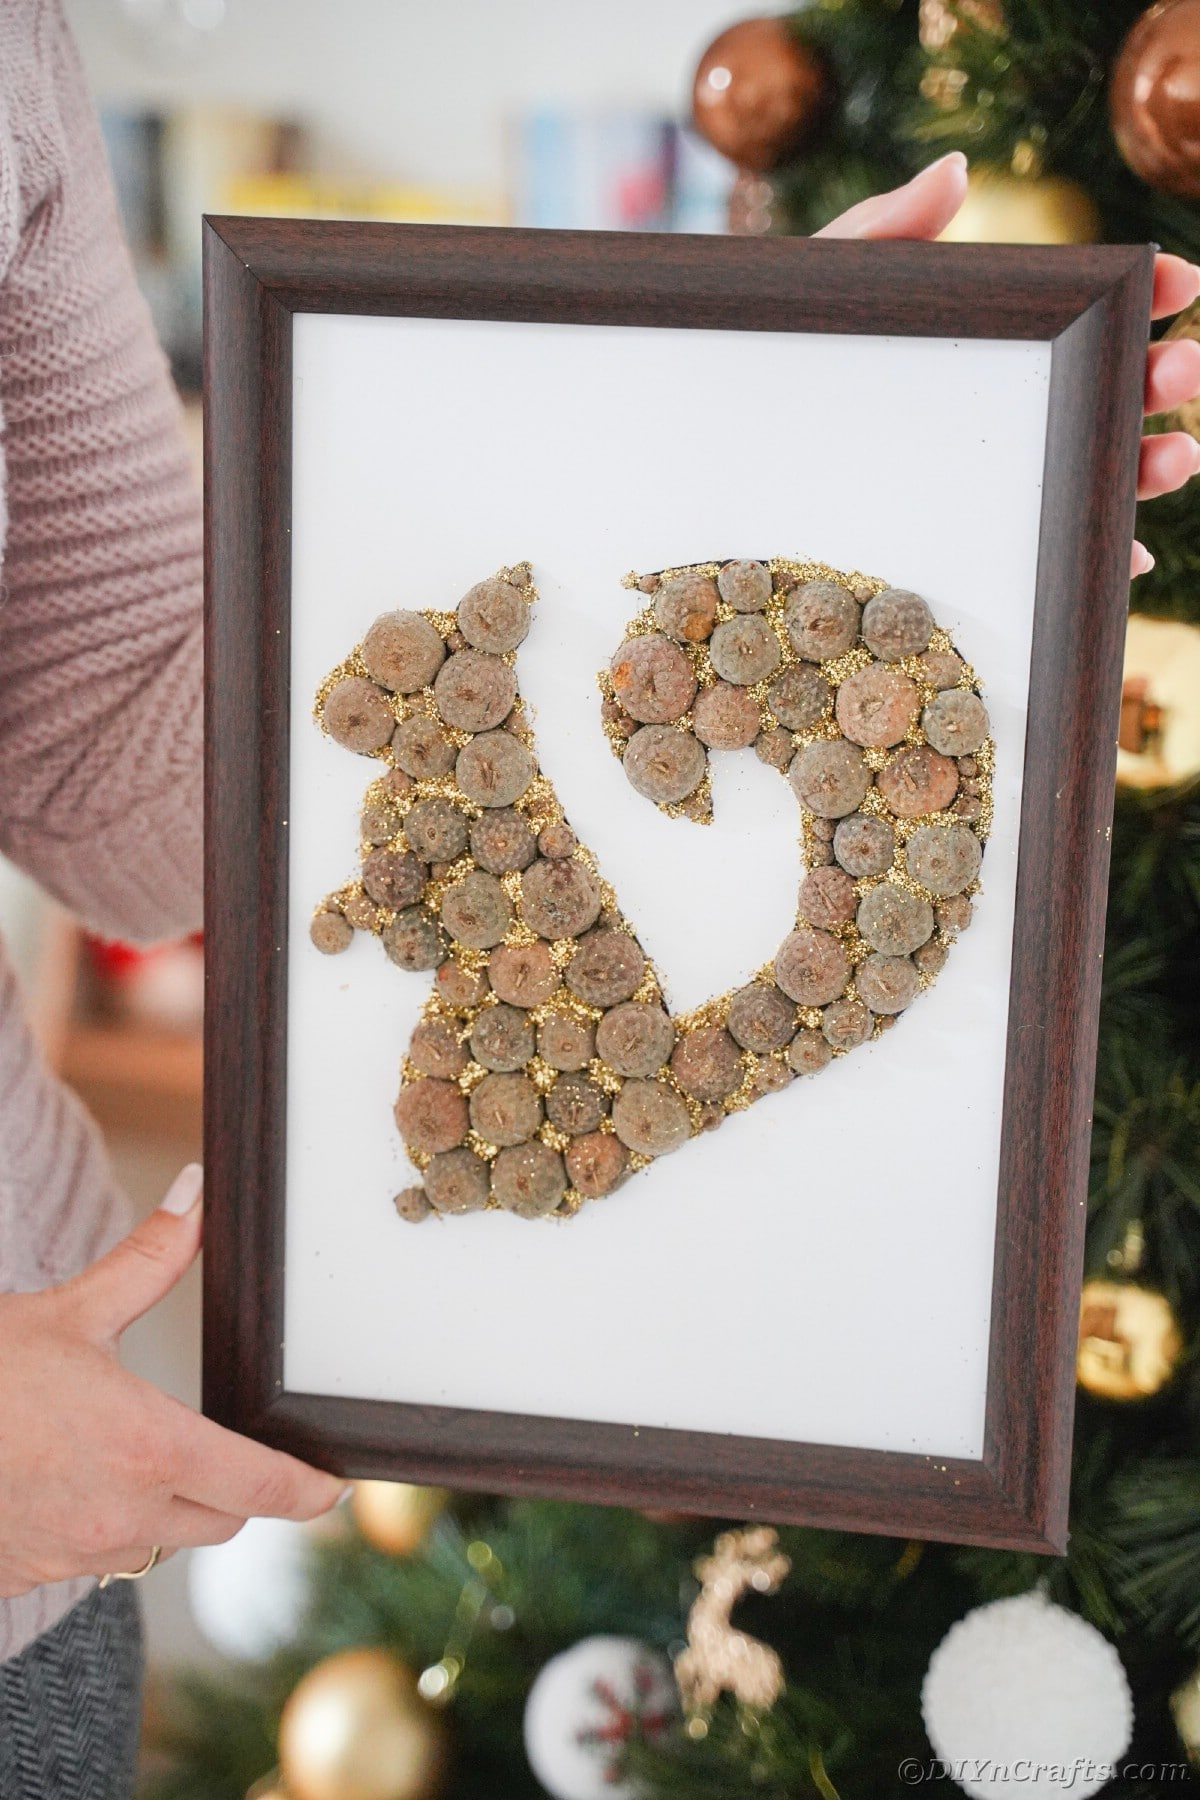 Rustic squirrel picture held by woman in front of Christmas tree